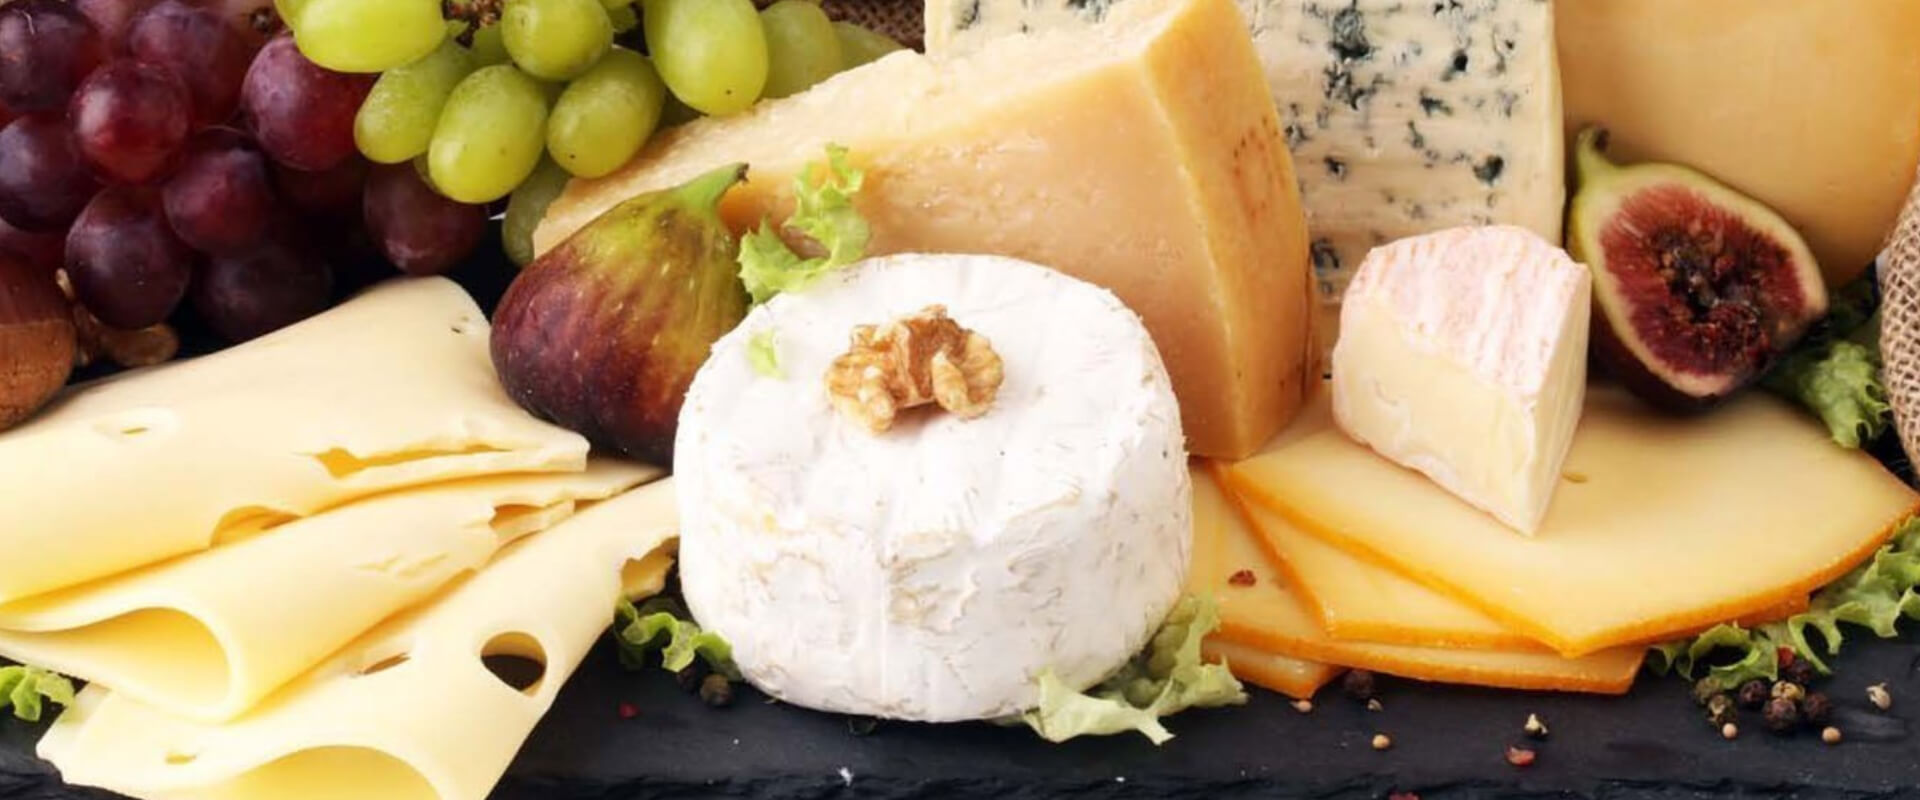 Cheese Gifts & Platters